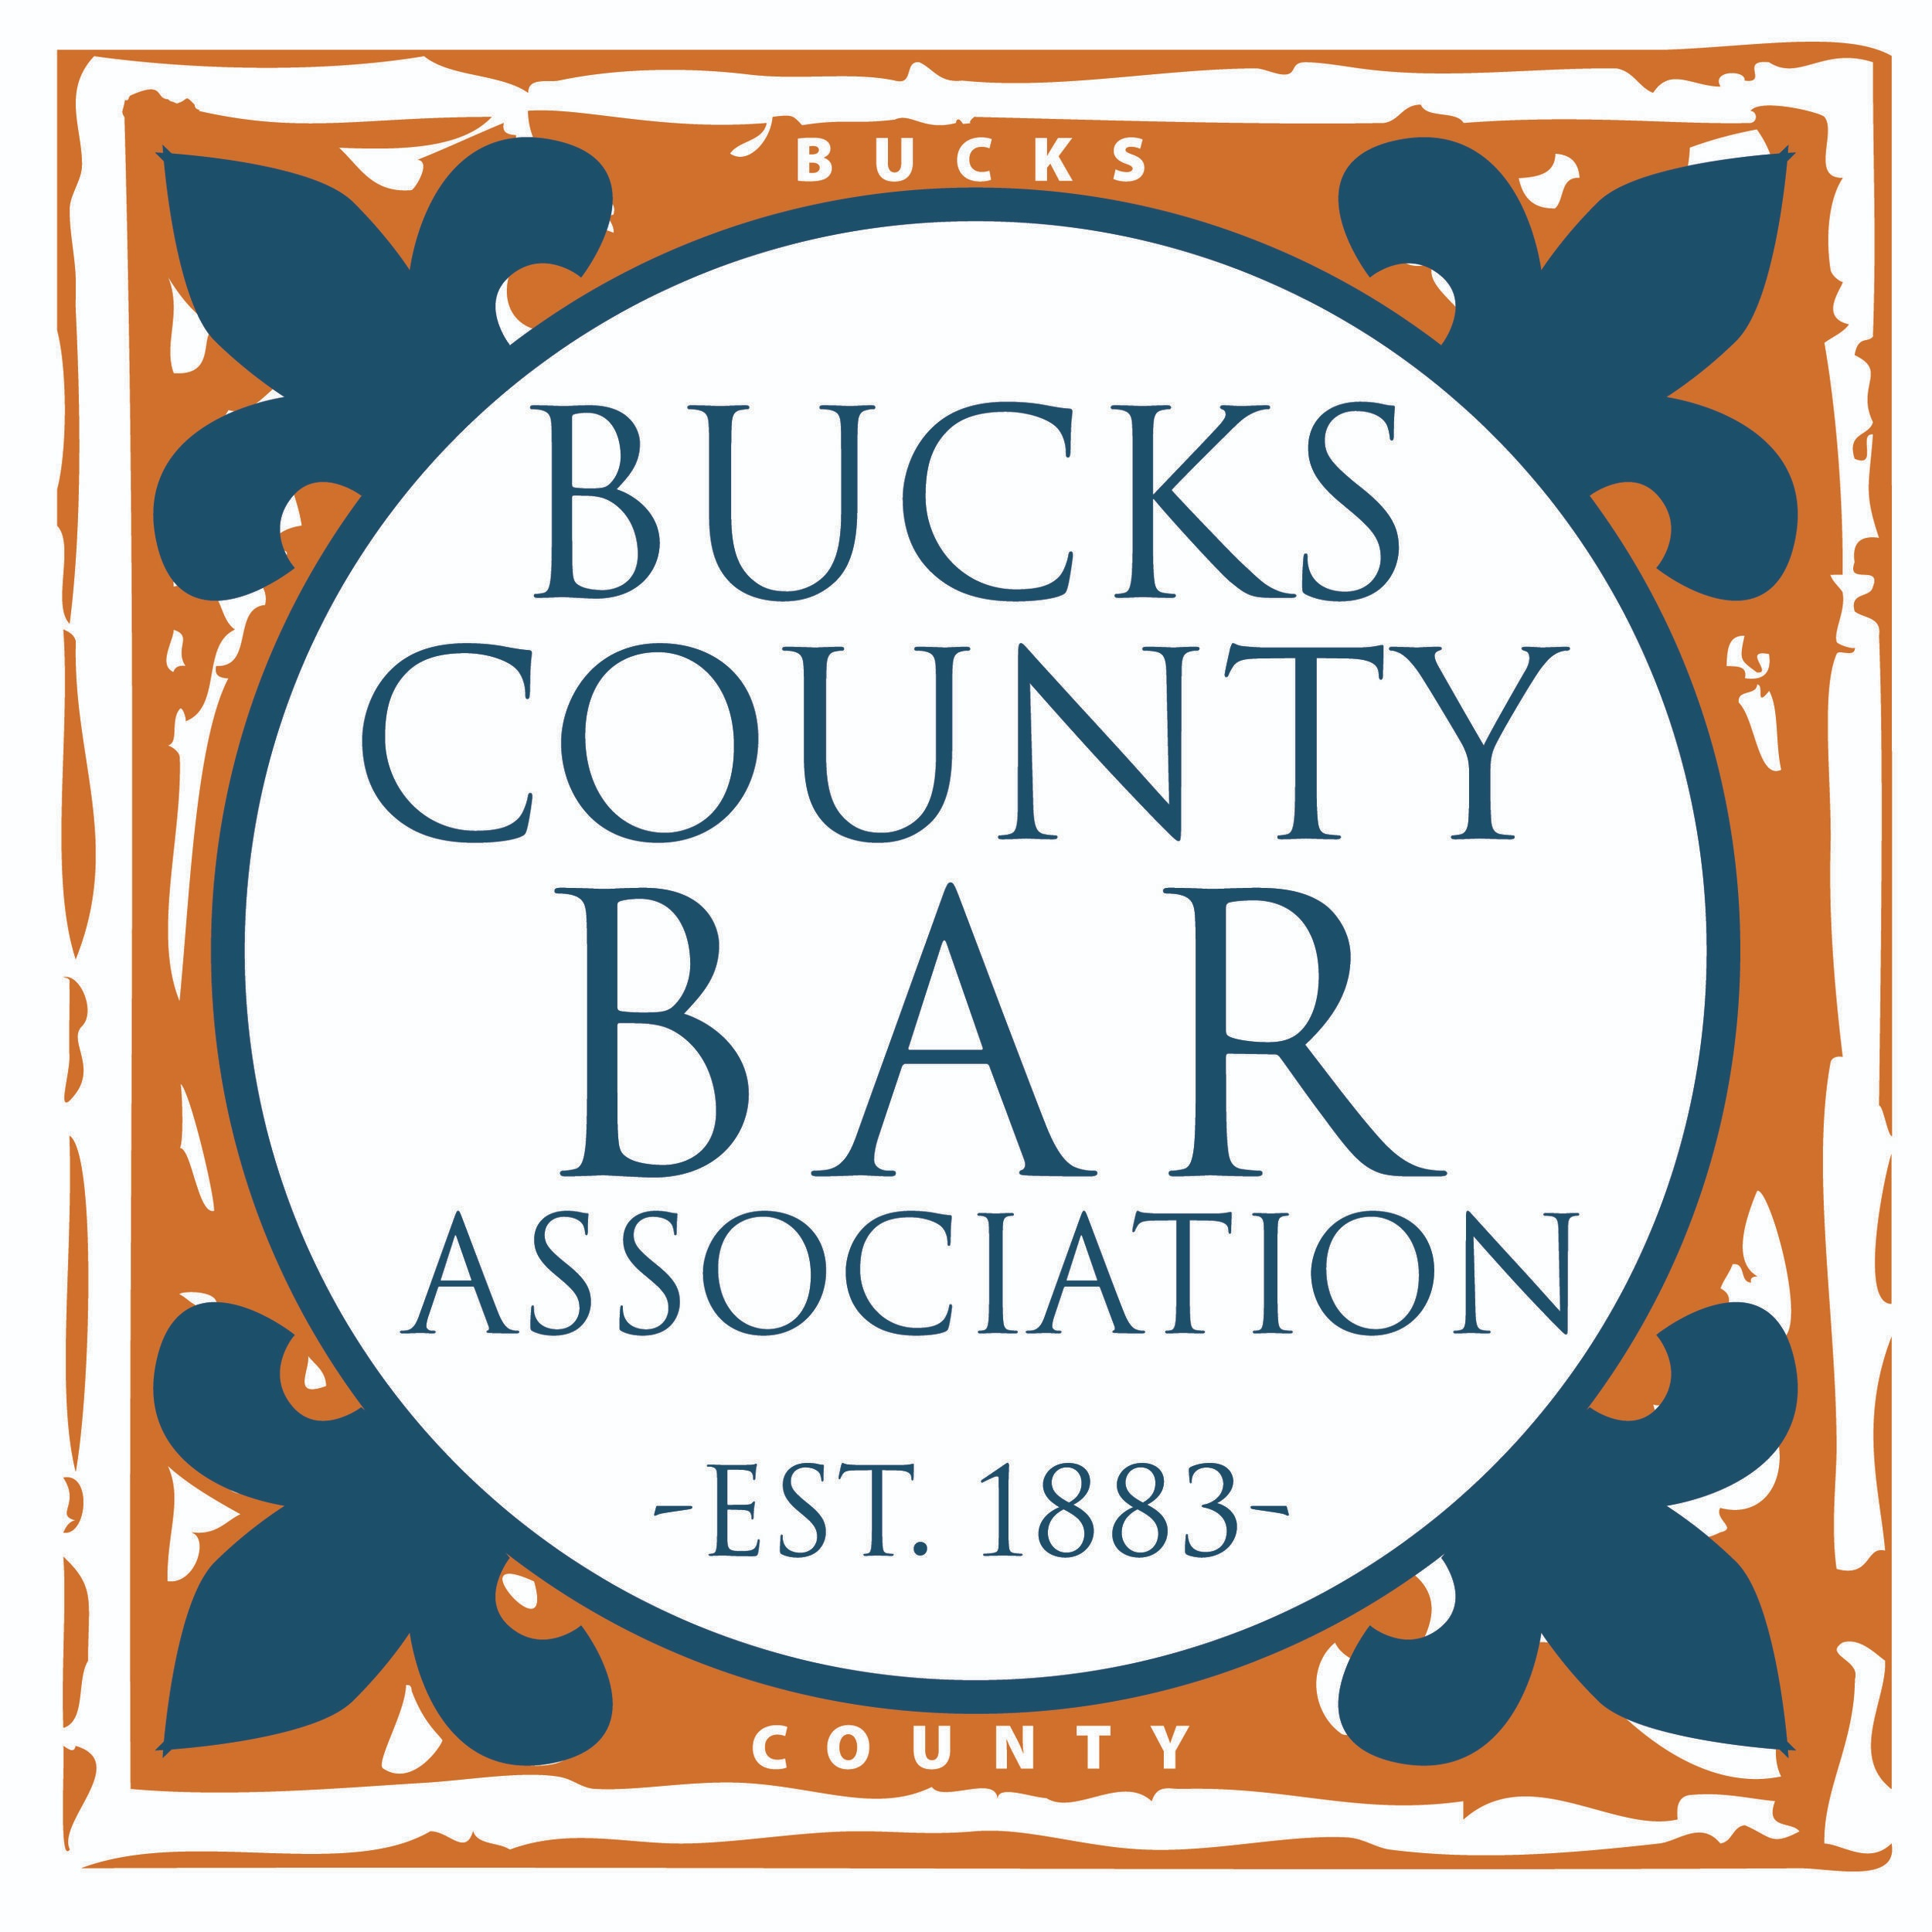 "Bucks County Bar Association - Grace Deon received the most ""Highly Recommended"" votes of any of the 10 judicial candidates, by Bucks County Bar Association members in anonymous, non-partisan survey reviewing essential judicial qualities."